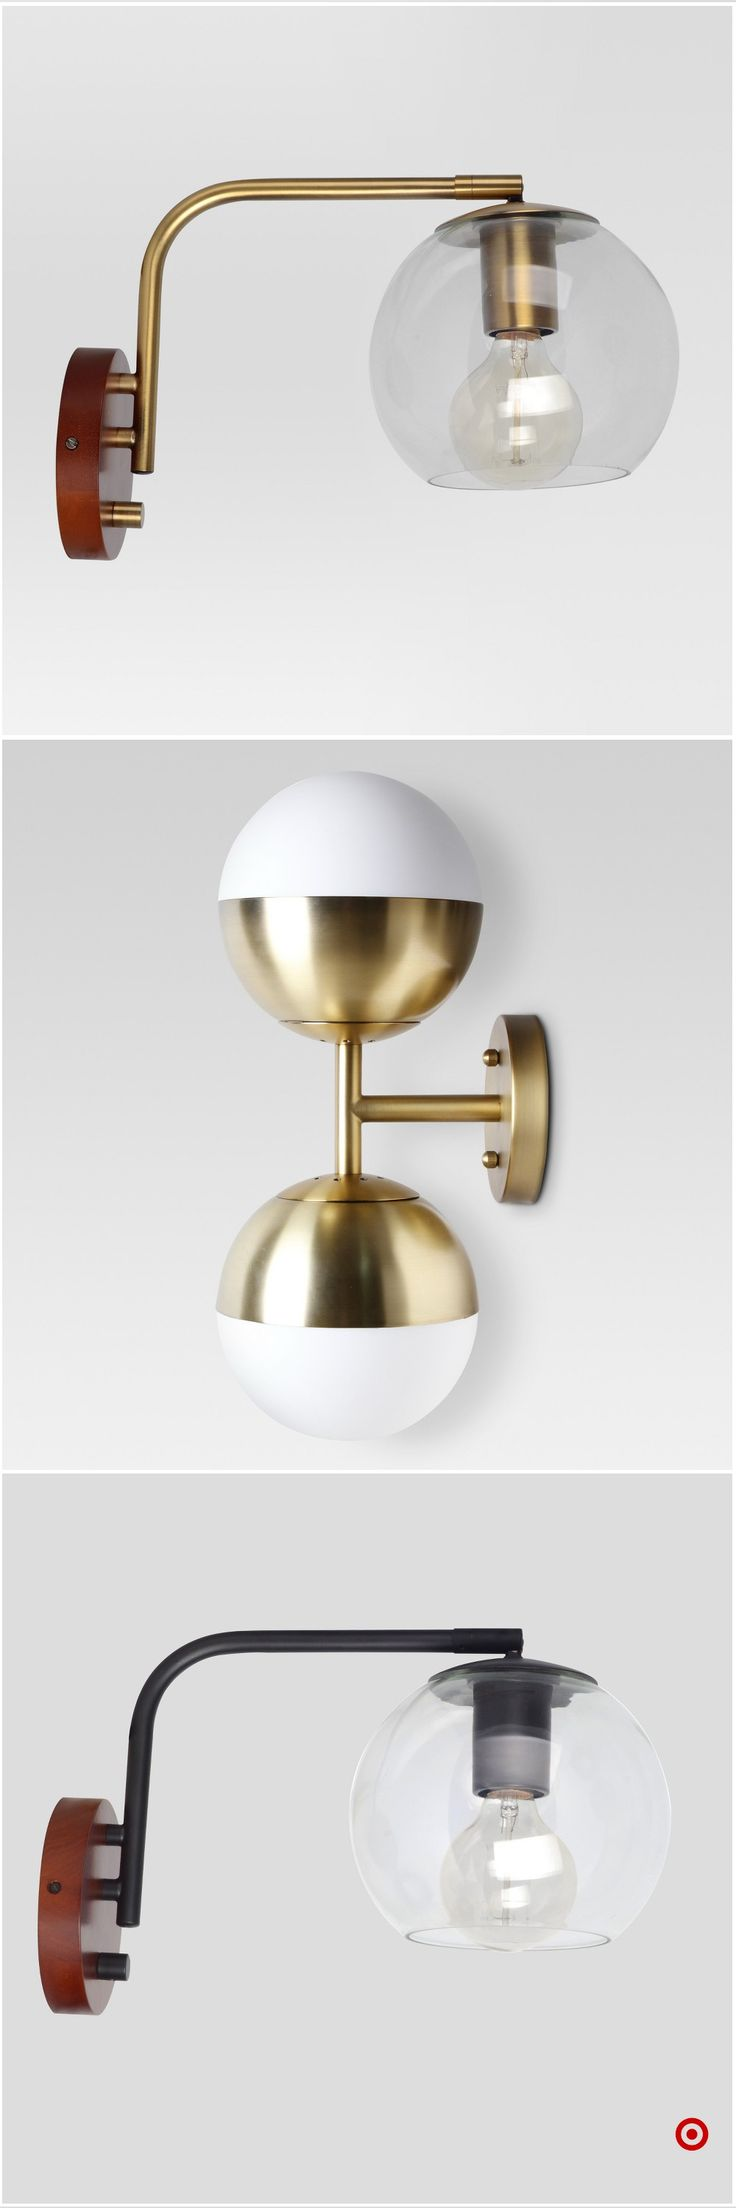 Shop Target for wall lights you will love at great low prices. Free shipping on all orders or free same-day pick-up in store.